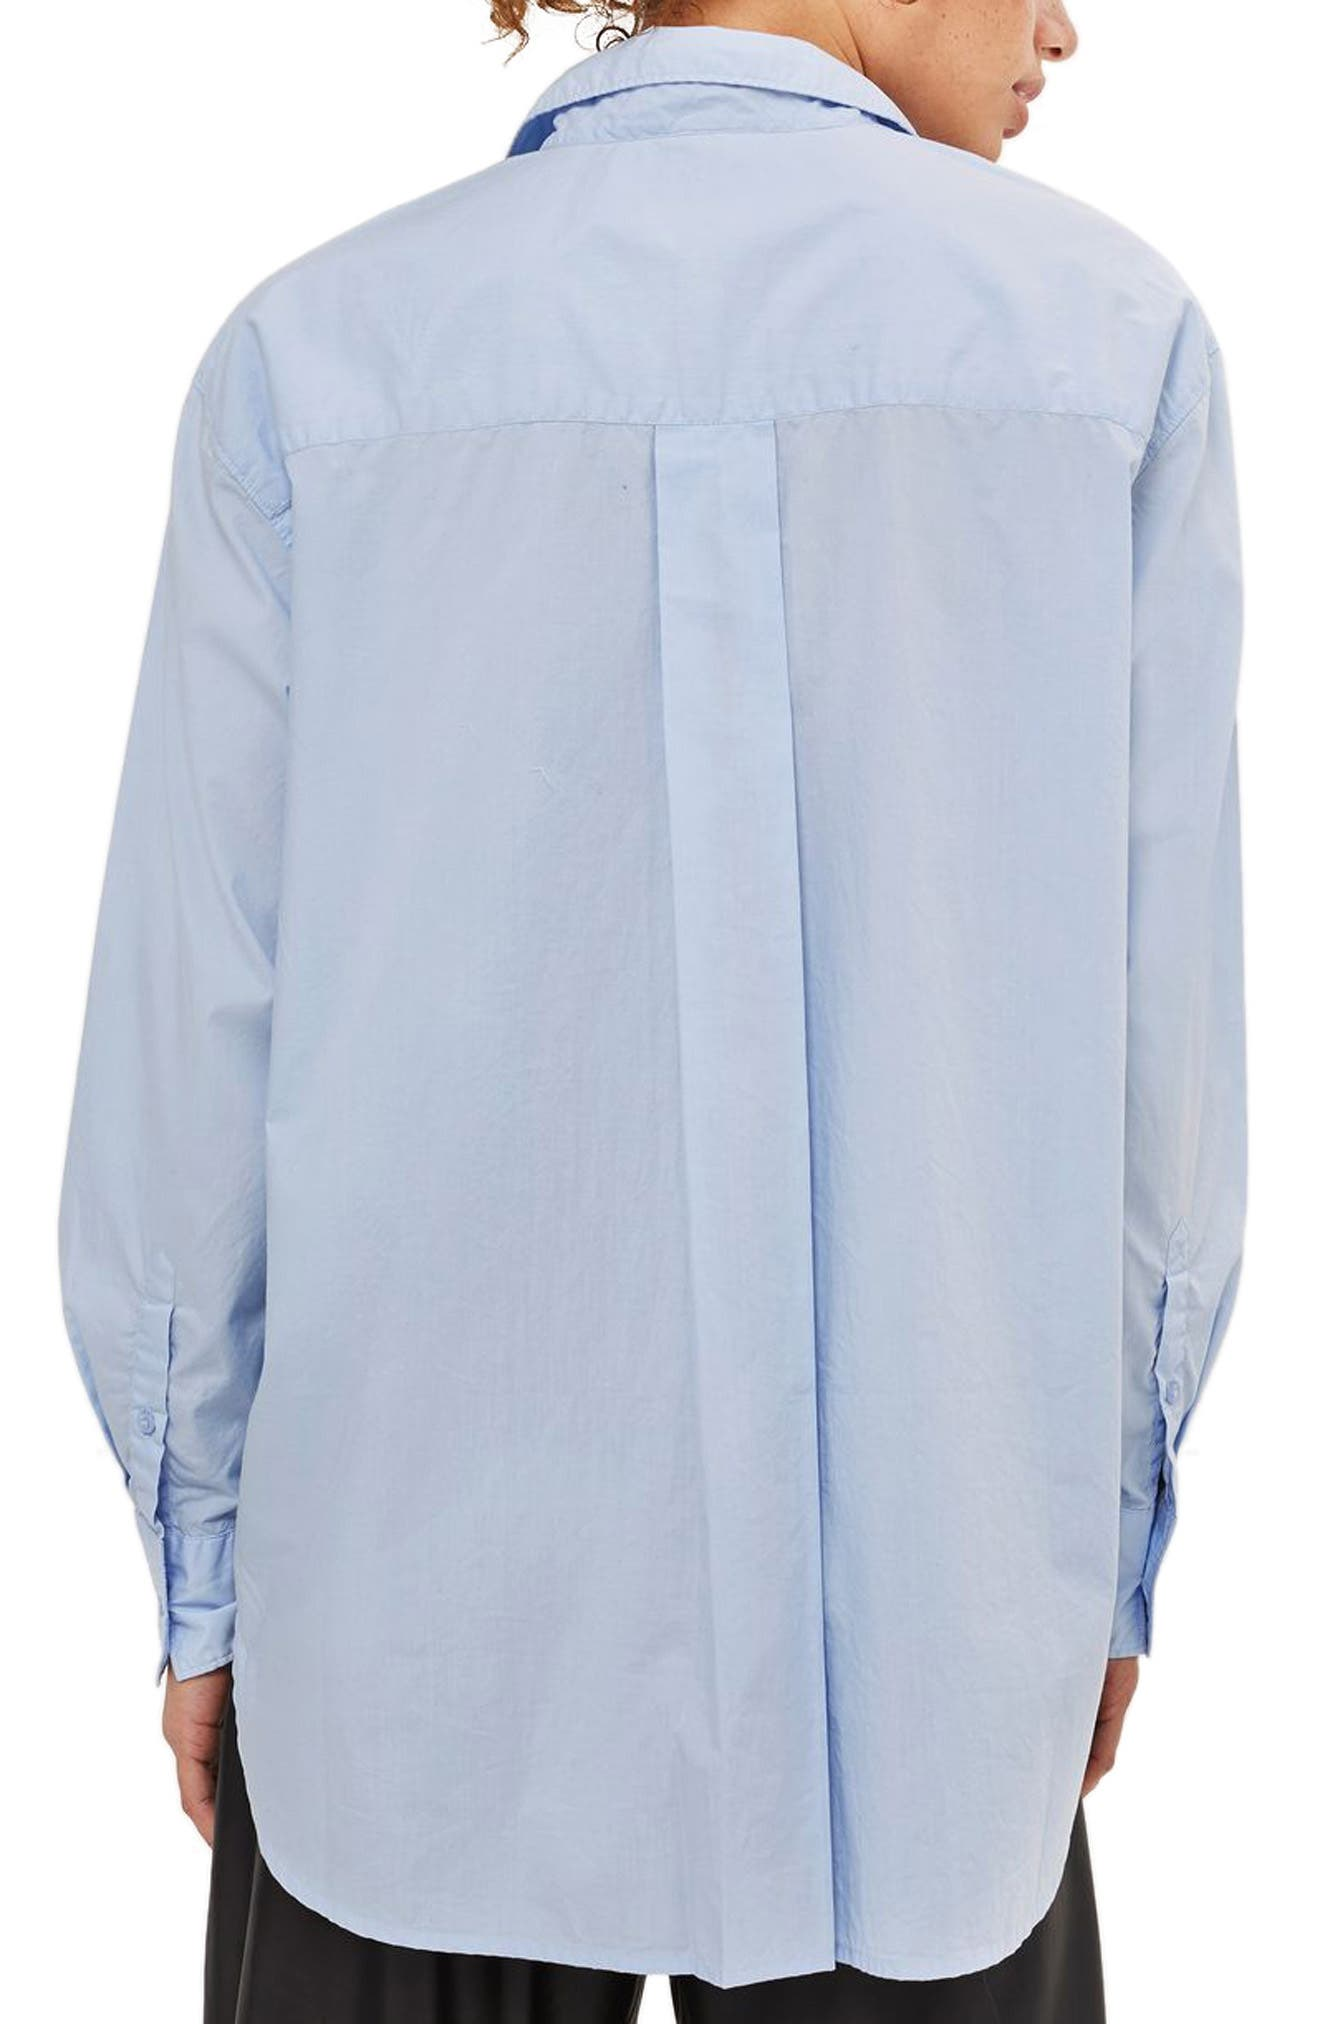 TOPSHOP, Olly Oversized Poplin Shirt, Alternate thumbnail 2, color, 450